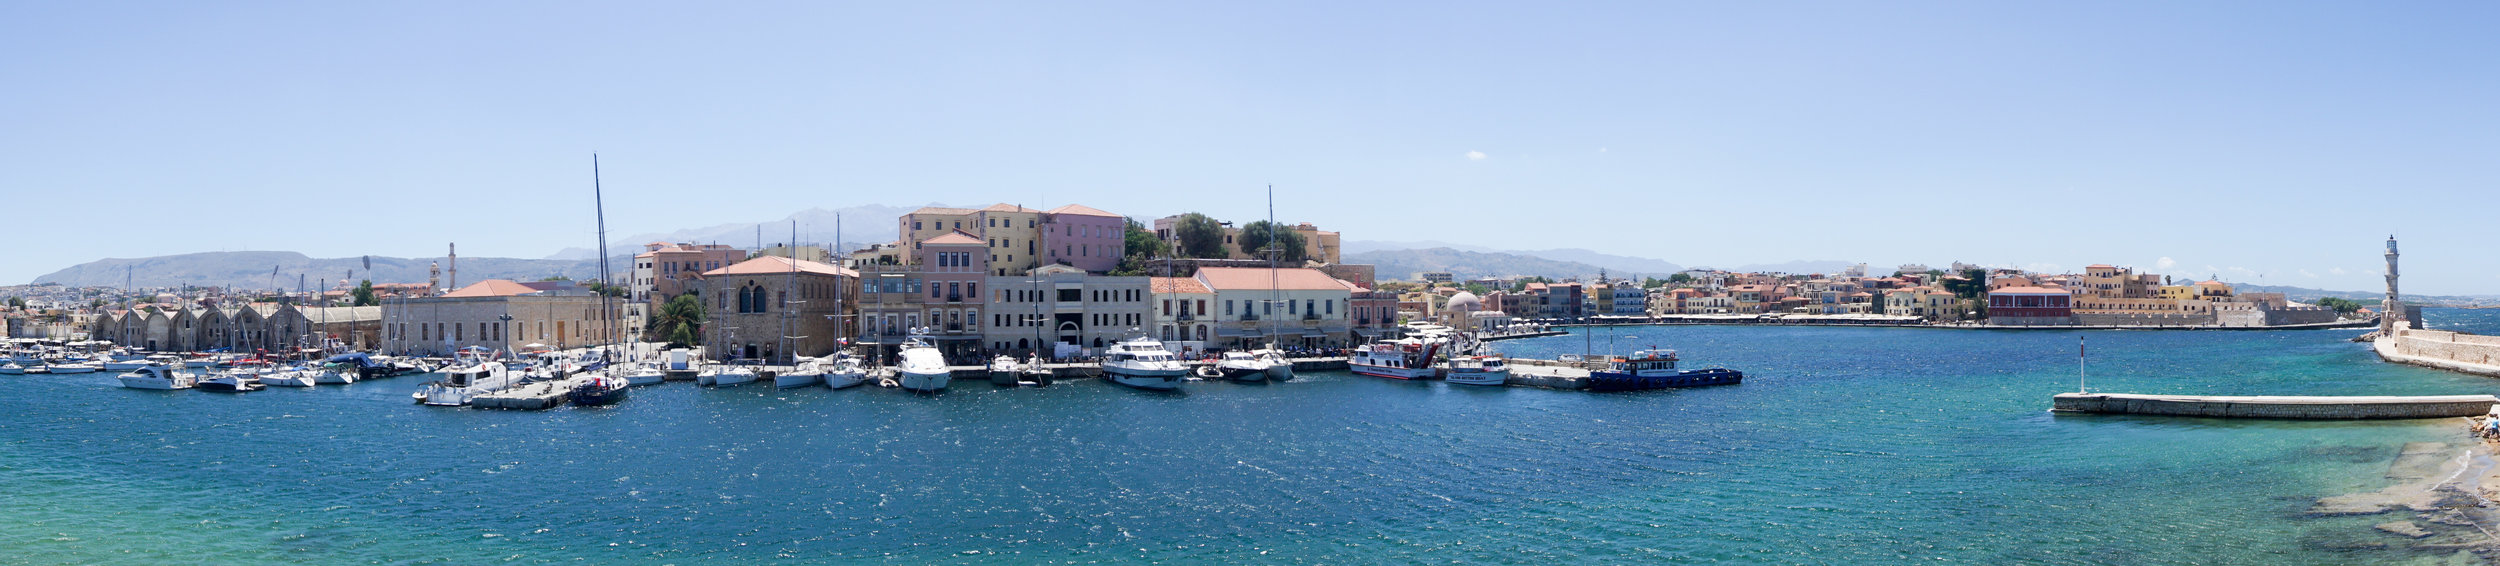 Pano of the harbor